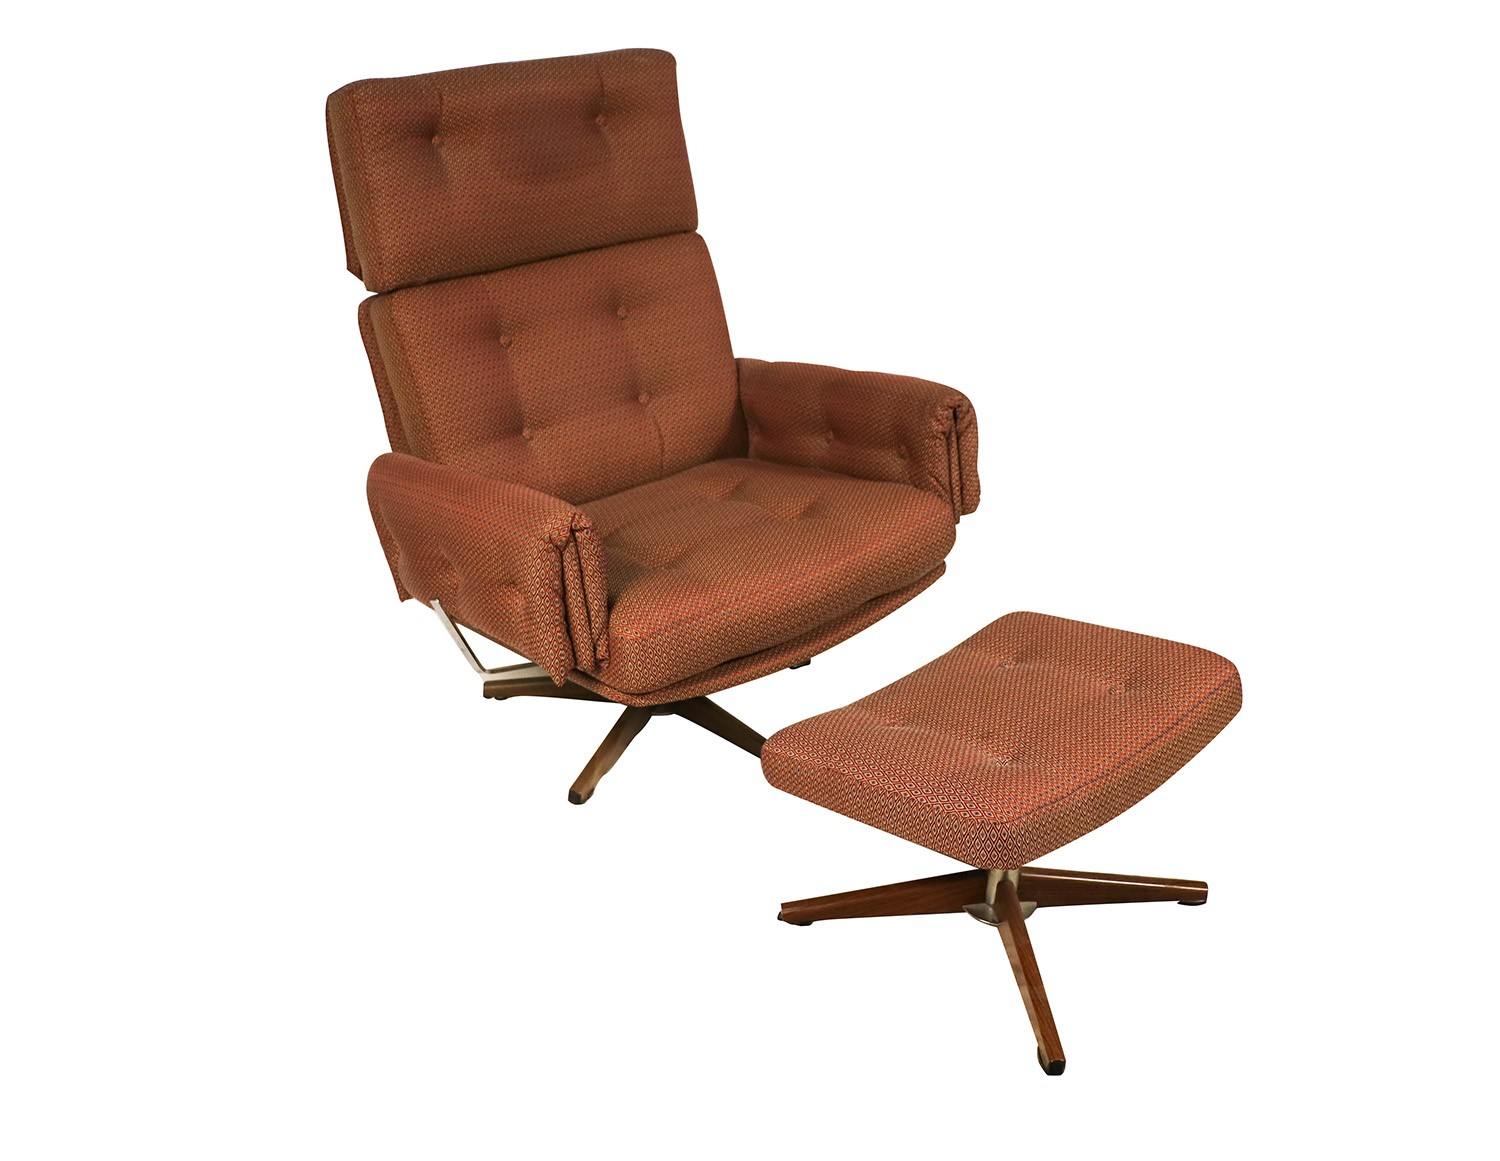 Mid Century Lounge Chair and Ottoman : Mid Century Lounge Chair and Ottoman 1 from marykaysfurniture.com size 1500 x 1161 jpeg 234kB